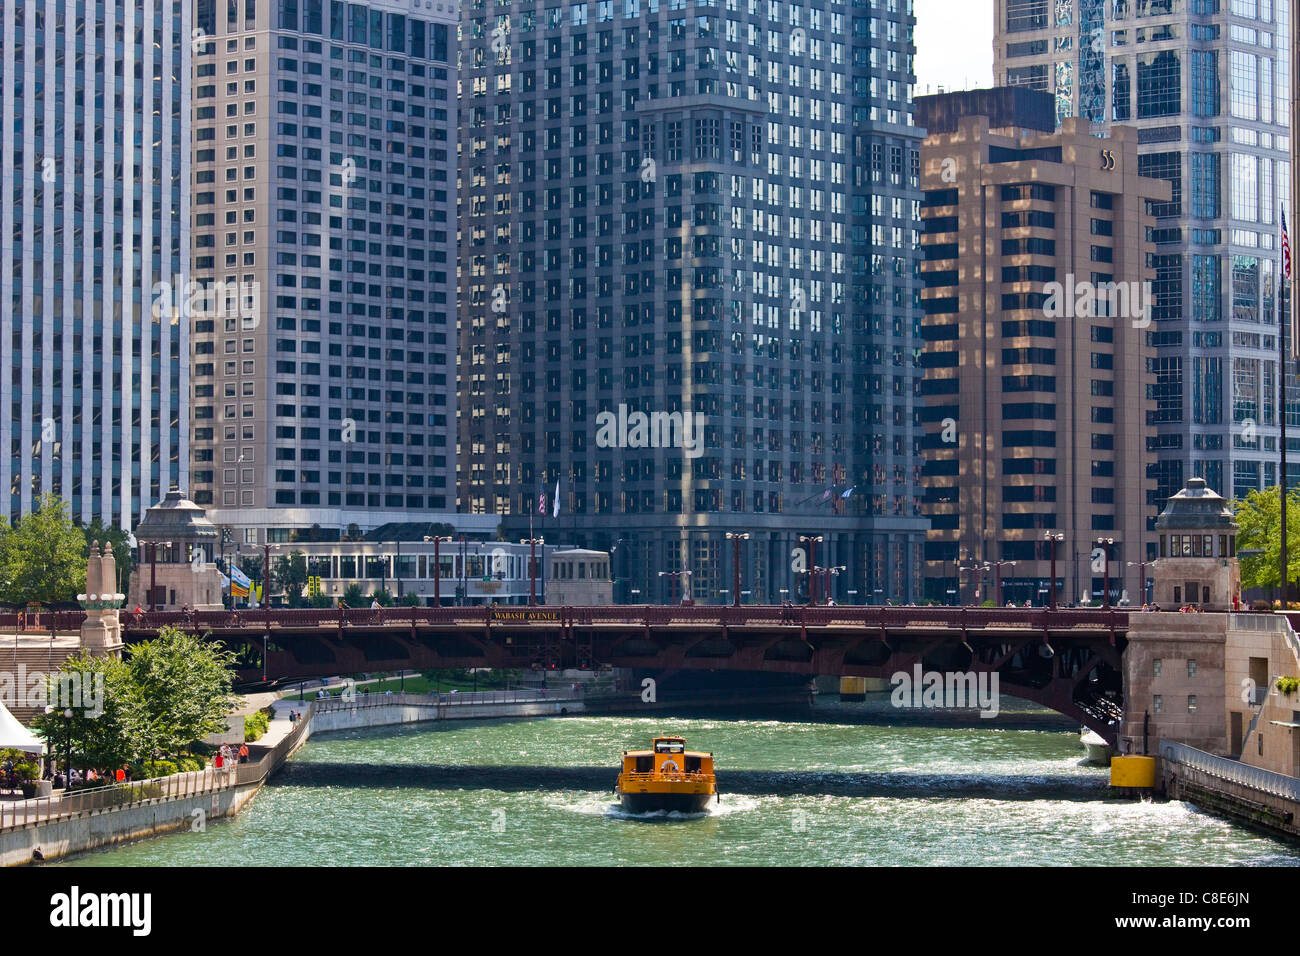 Chicago Watertaxi boat tour, Chicago, Illinois - Stock Image